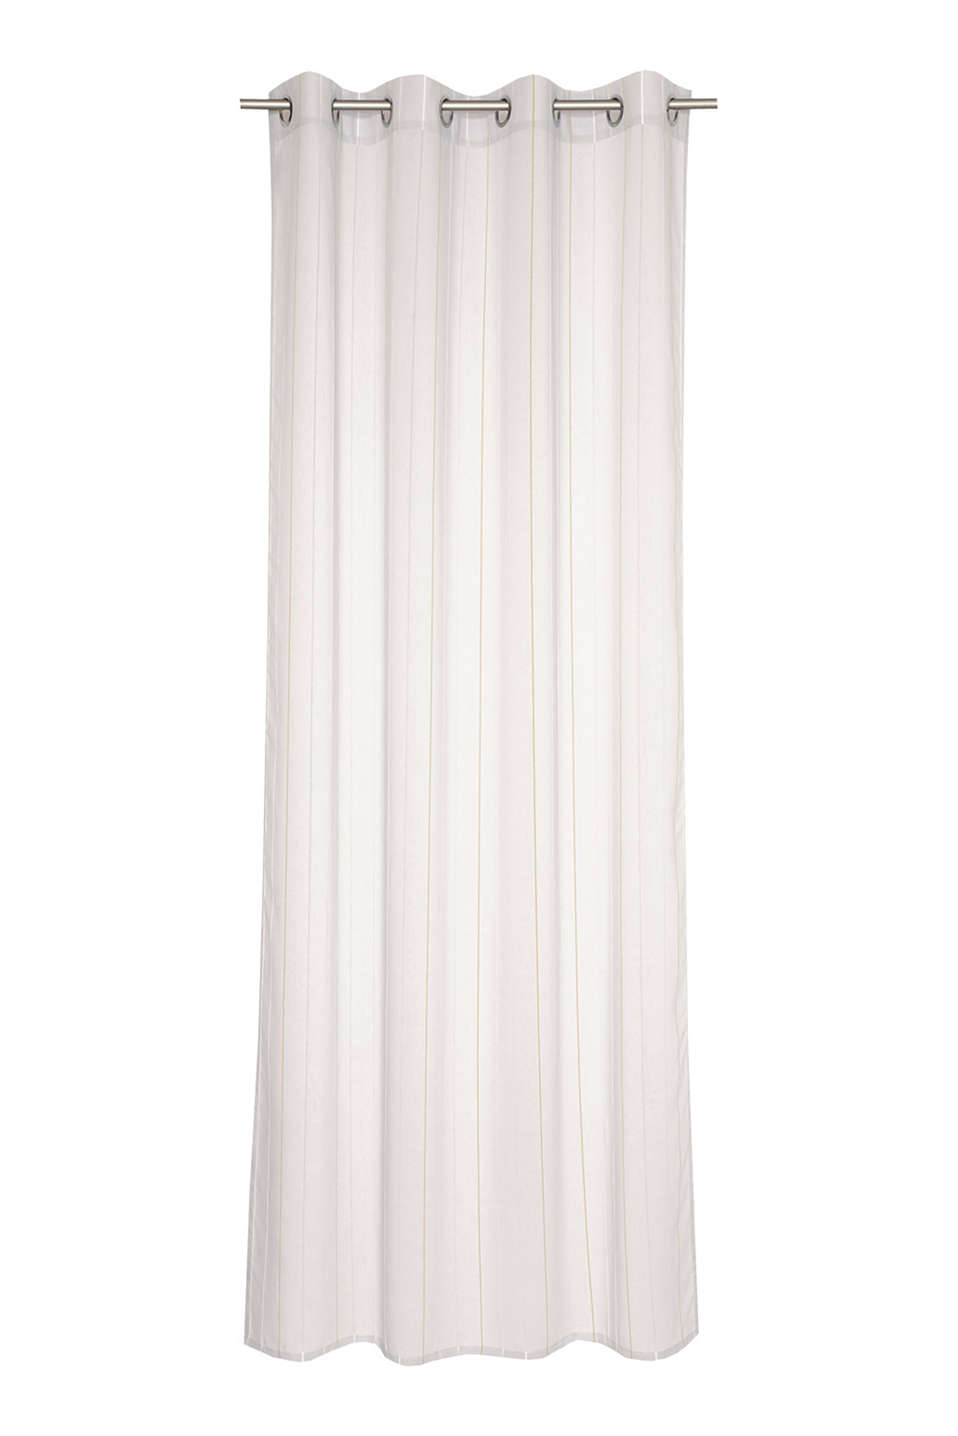 Esprit - Woven eyelet curtain + contrasting stripes